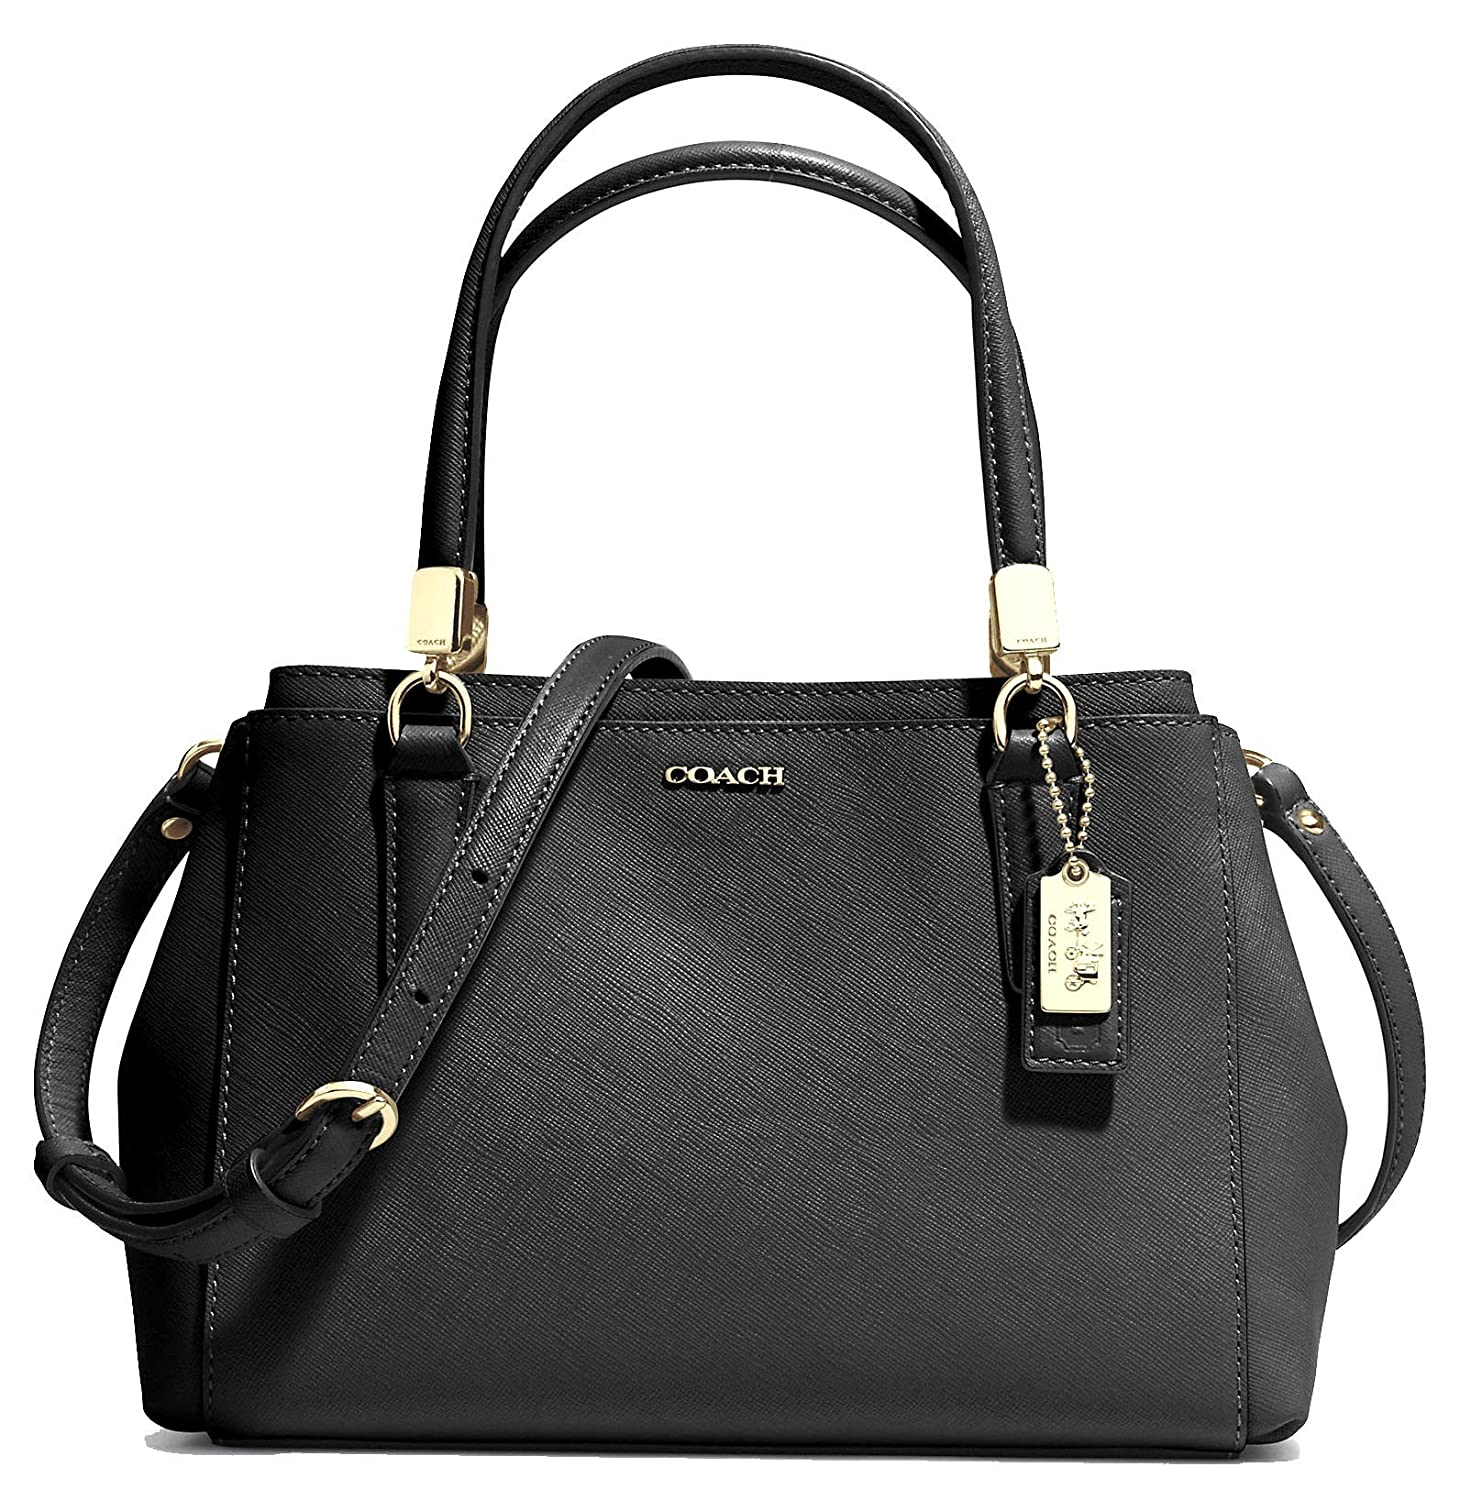 3b807b37f COACH 30402 Madison Mini Christie Carryall Shoulderbag in Light Gold Black:  Handbags: Amazon.com